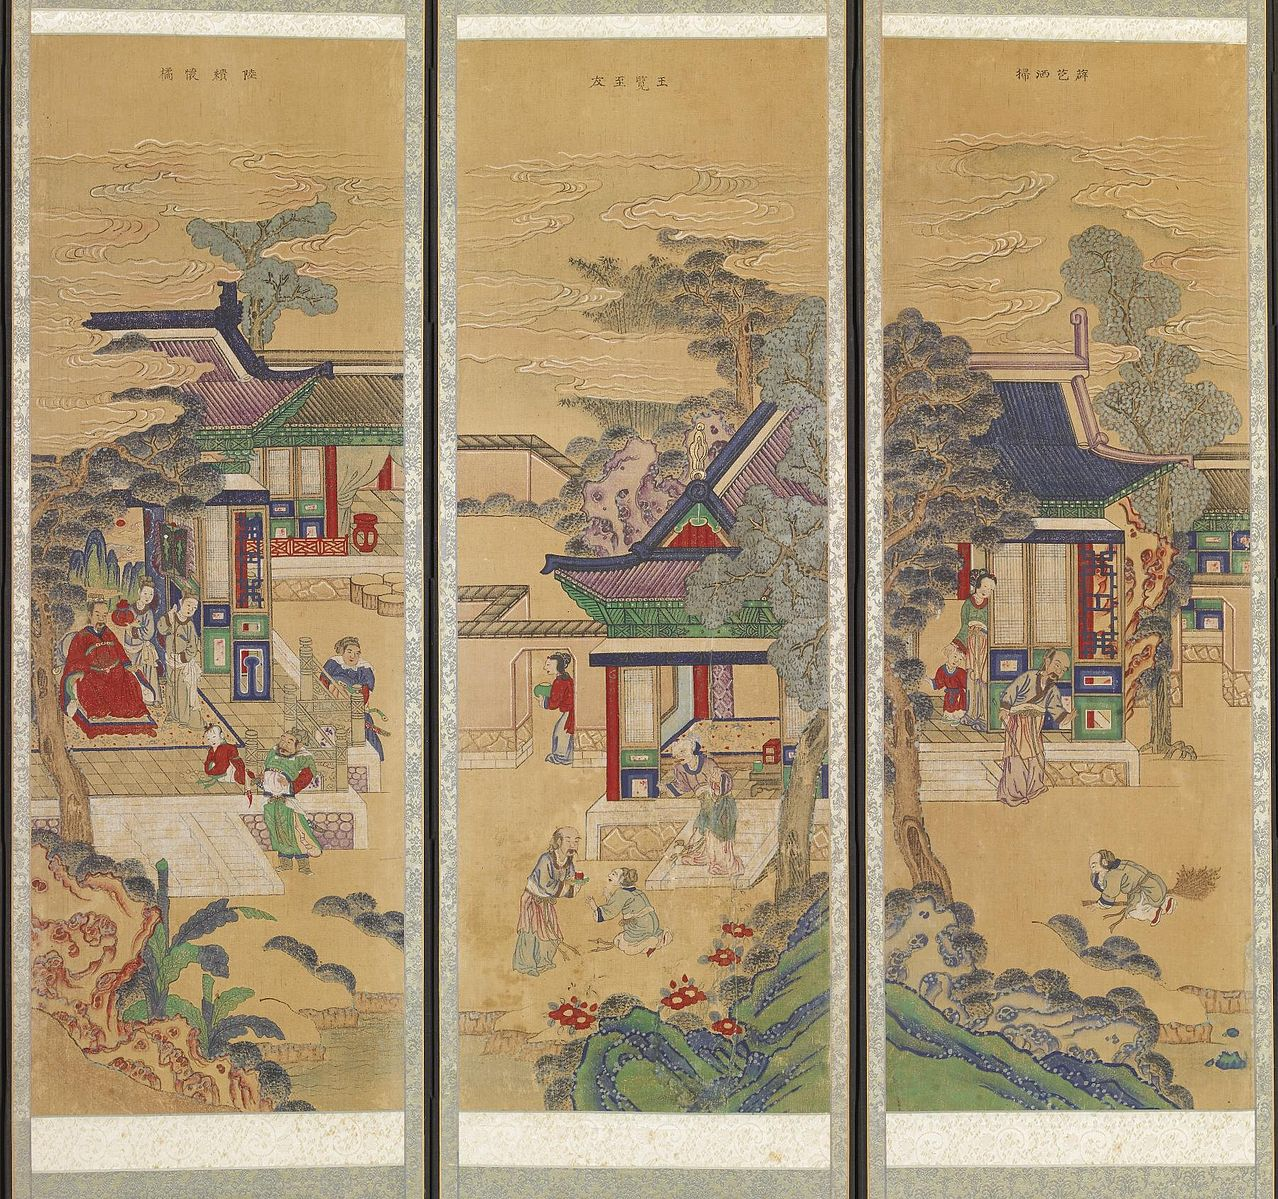 Ten-panel Folding Screen with Scenes of Filial Piety. Korea. (Image Credit: Walters Art Museum [Public domain])